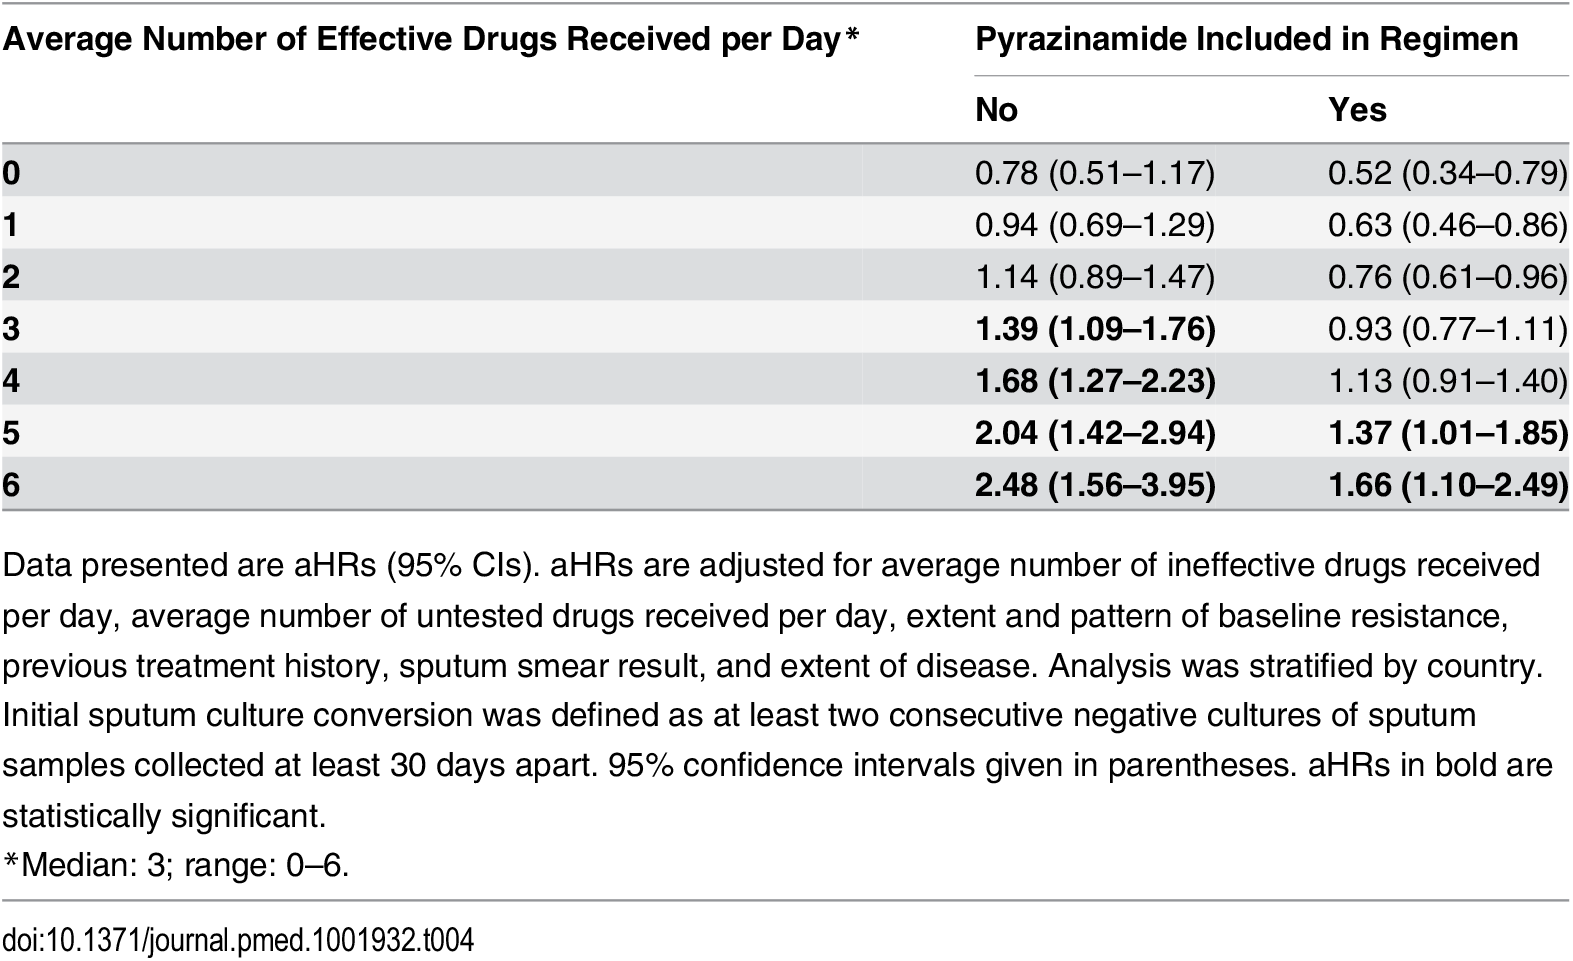 Multivariable model 2 adjusted hazard ratios for sputum culture conversion associated with inclusion of one additional untested drug in the regimen, stratified by average number of effective drugs received per day and inclusion of pyrazinamide in the regimen.